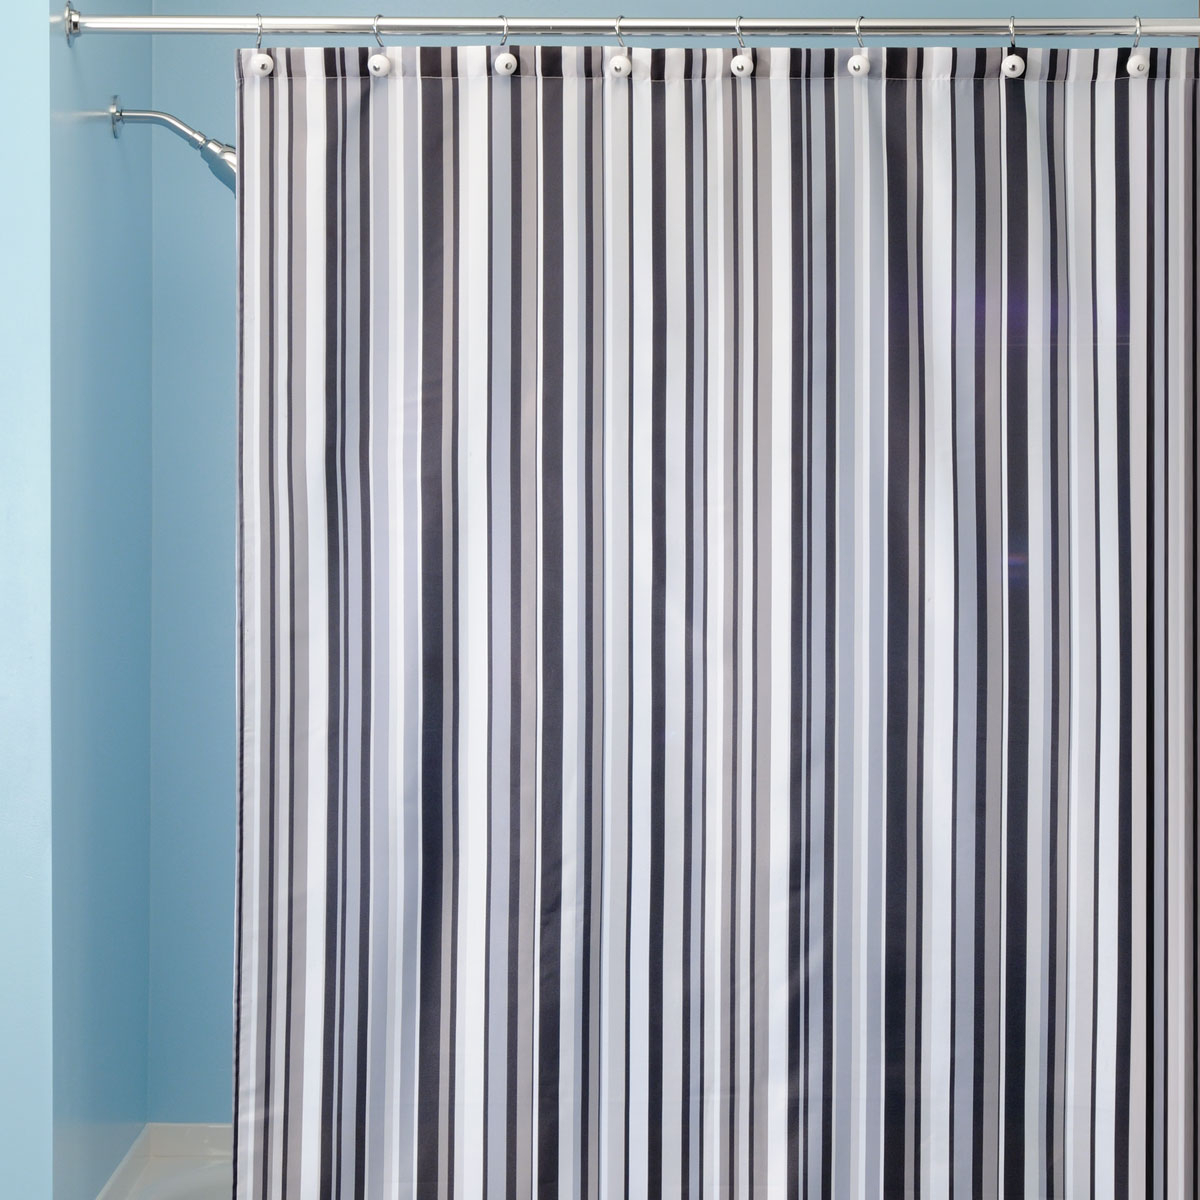 Red And Navy Striped Shower Curtain • Shower Curtains Ideas